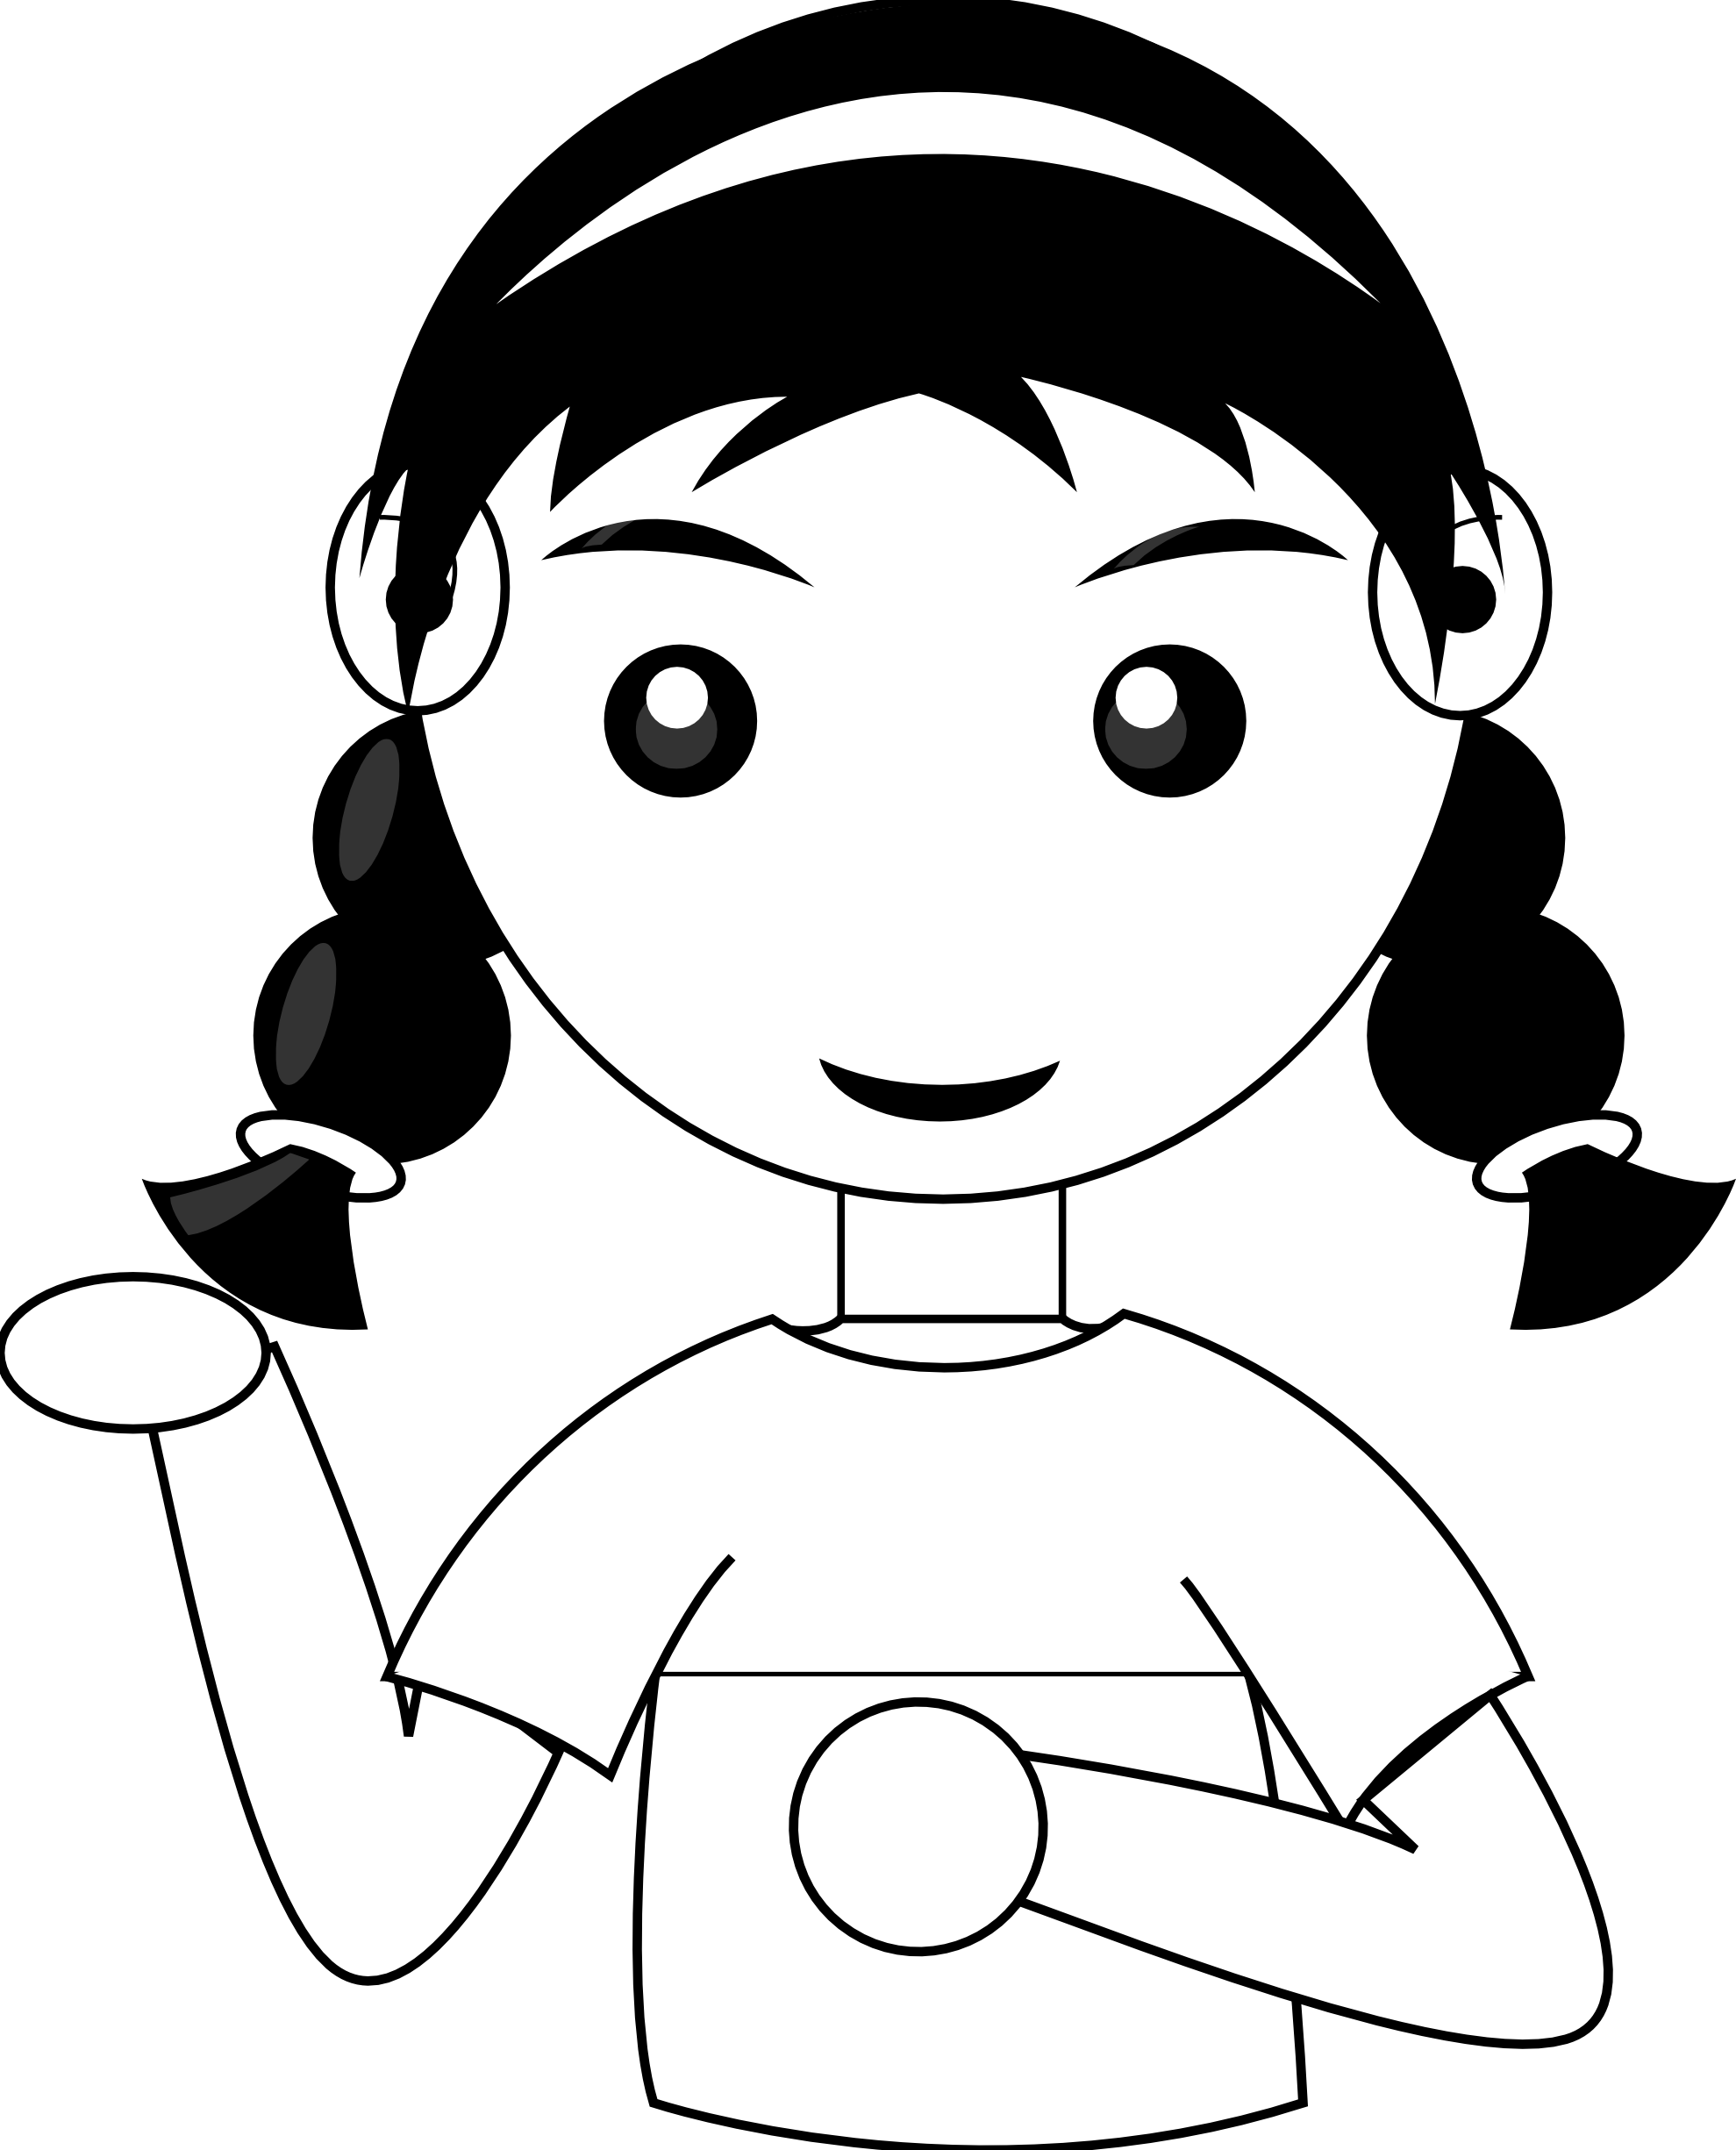 Woman Face Line Drawing Png : Cute snake clipart black and white panda free